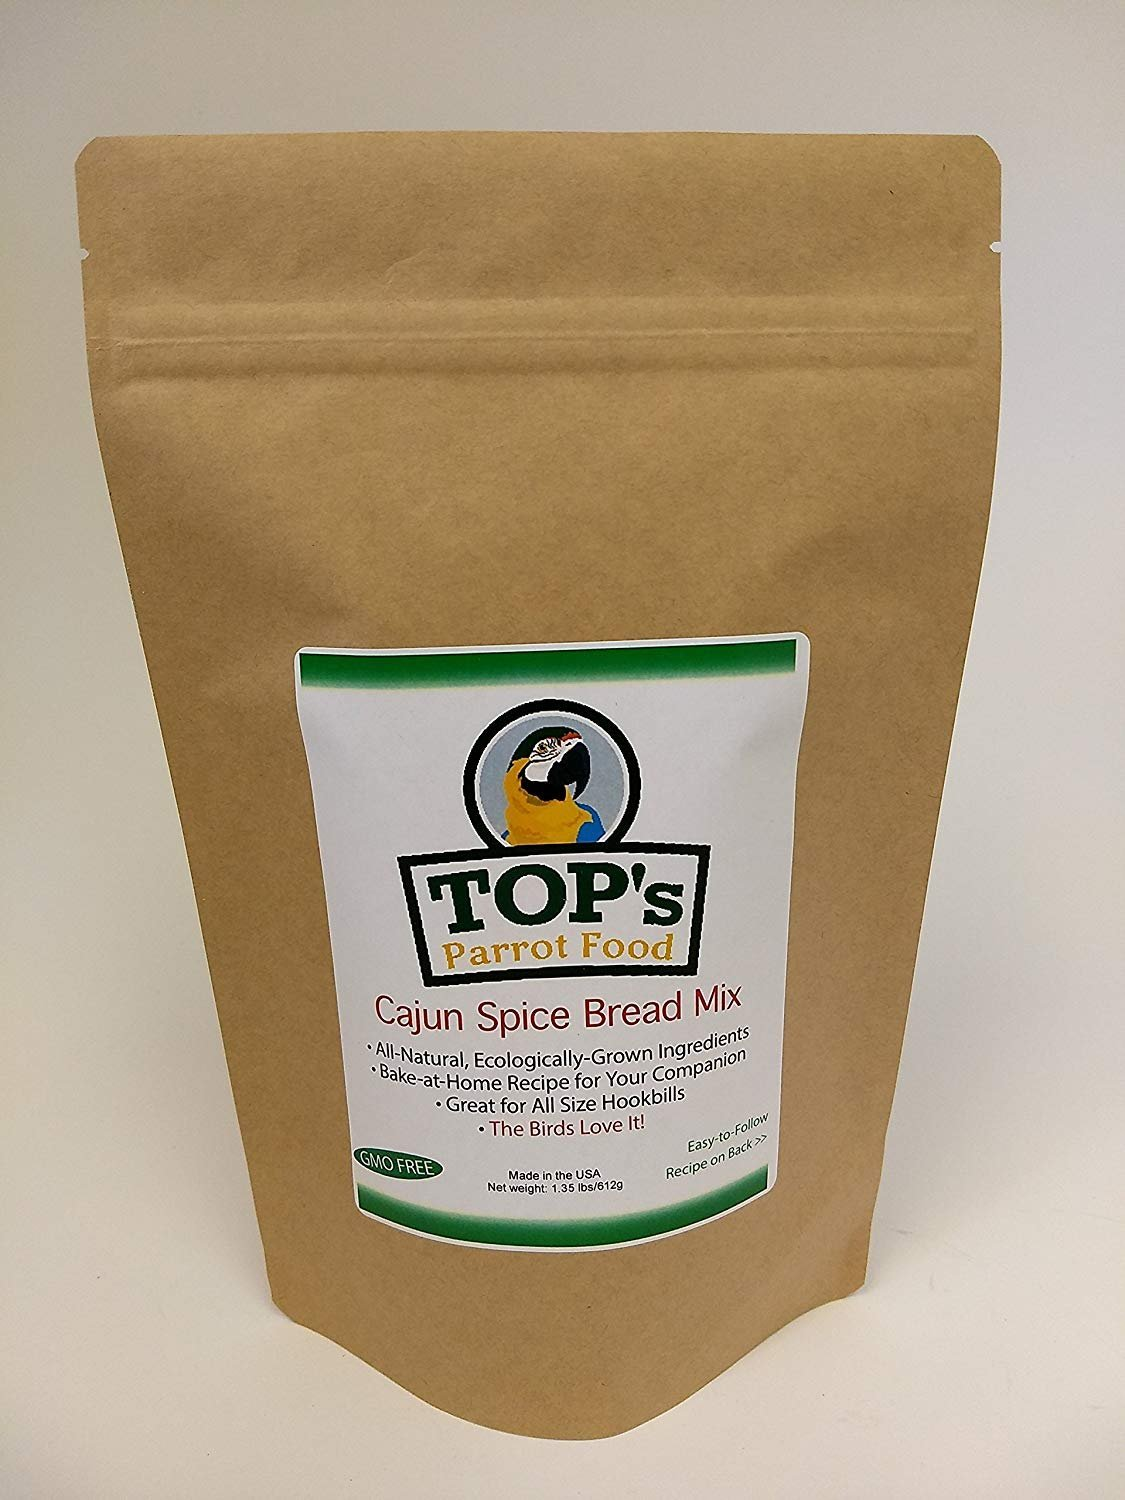 TOP's Cajun Spice Bread Mix